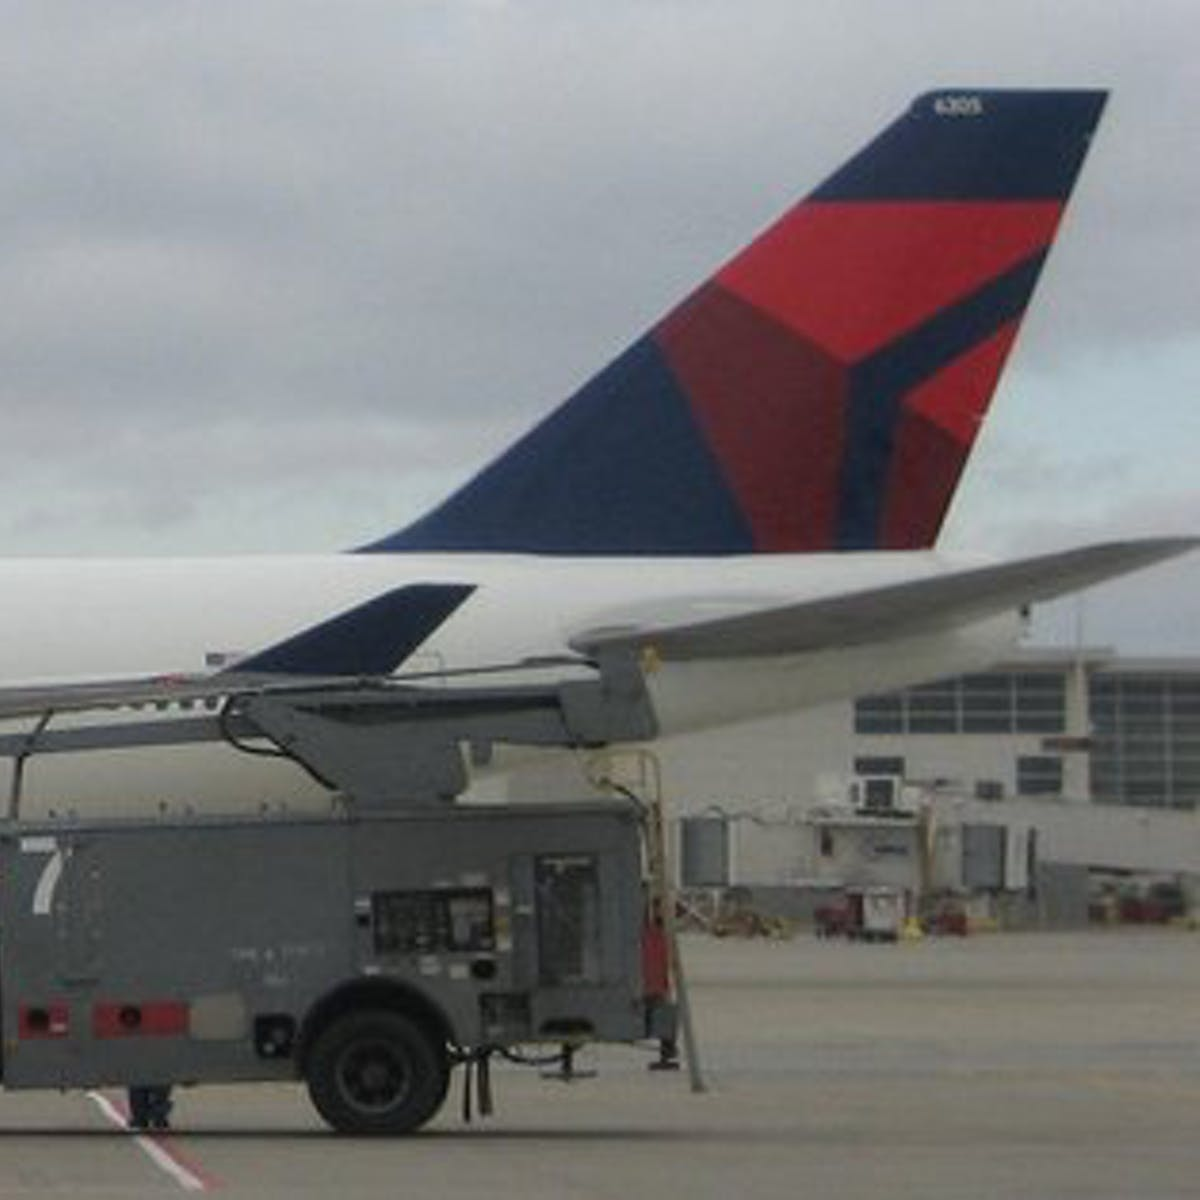 Delta 747 Retirement: What Happens to the Airplanes? We